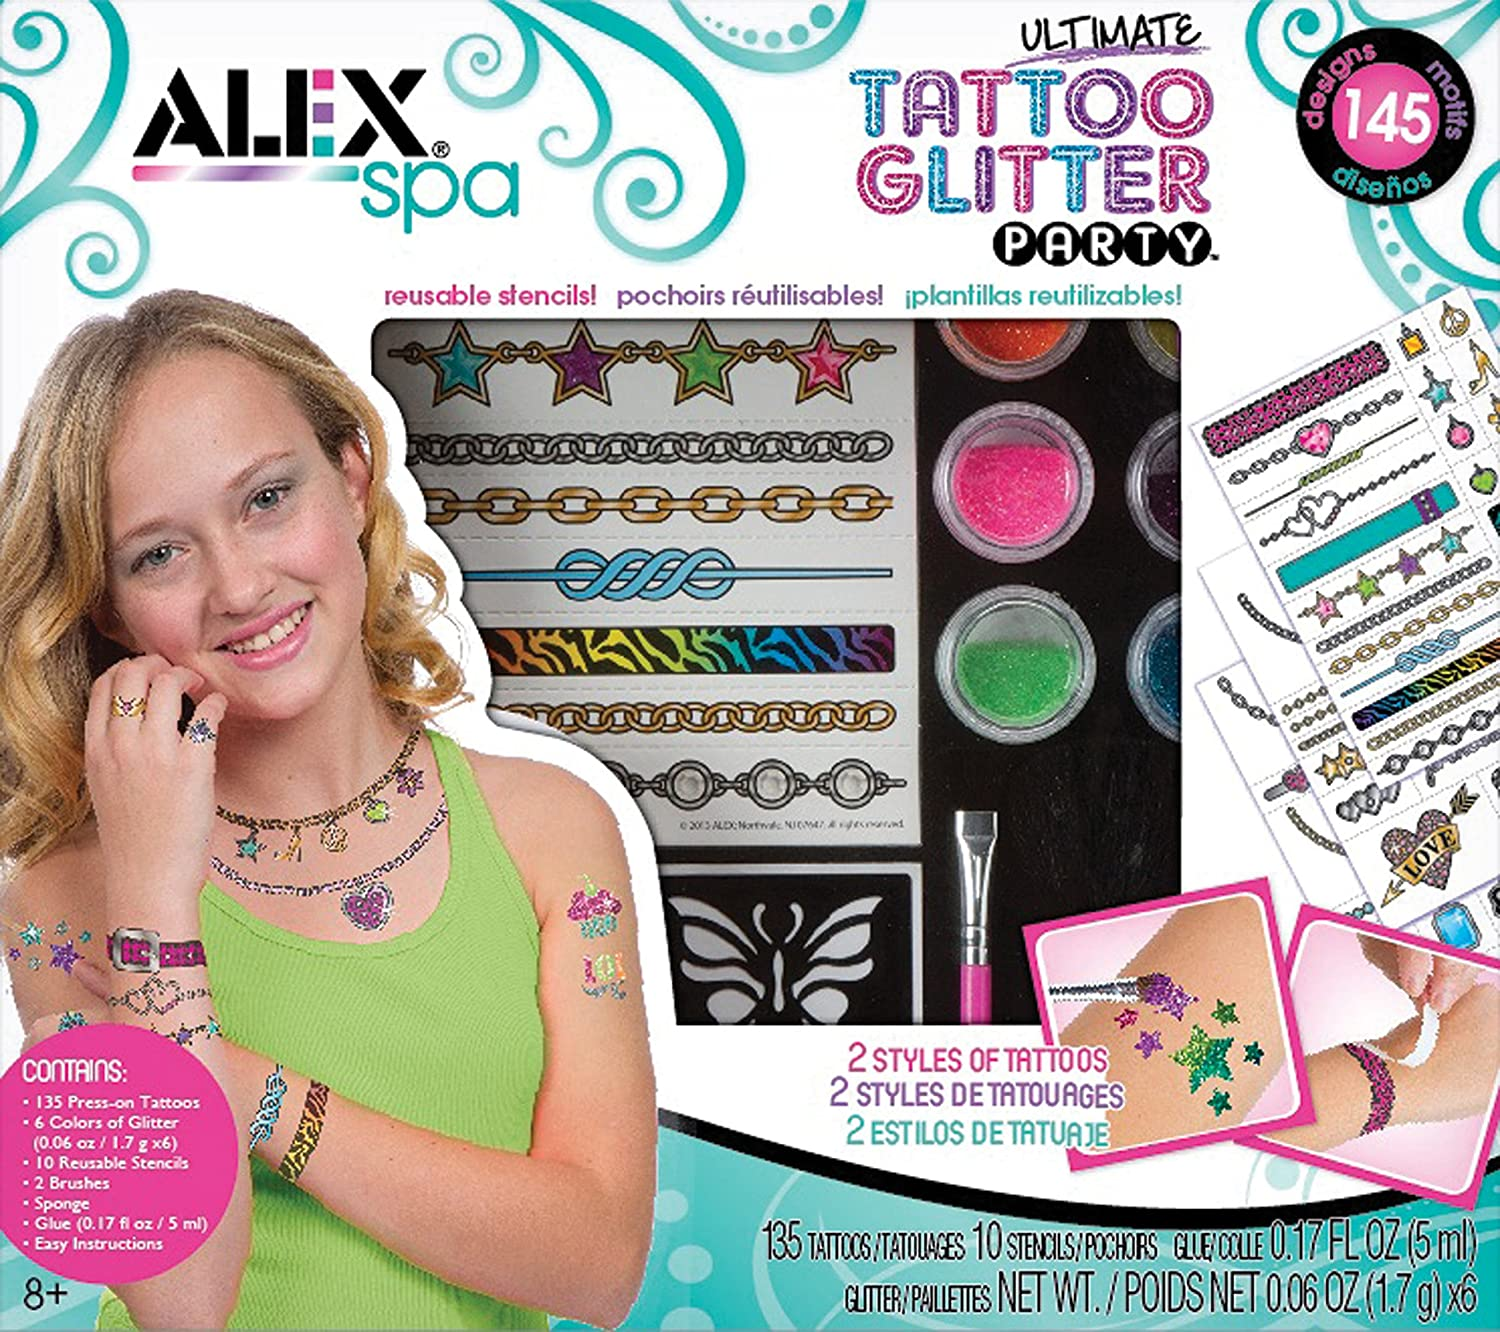 Ultimate Glitter Tattoo Party Craft Kit